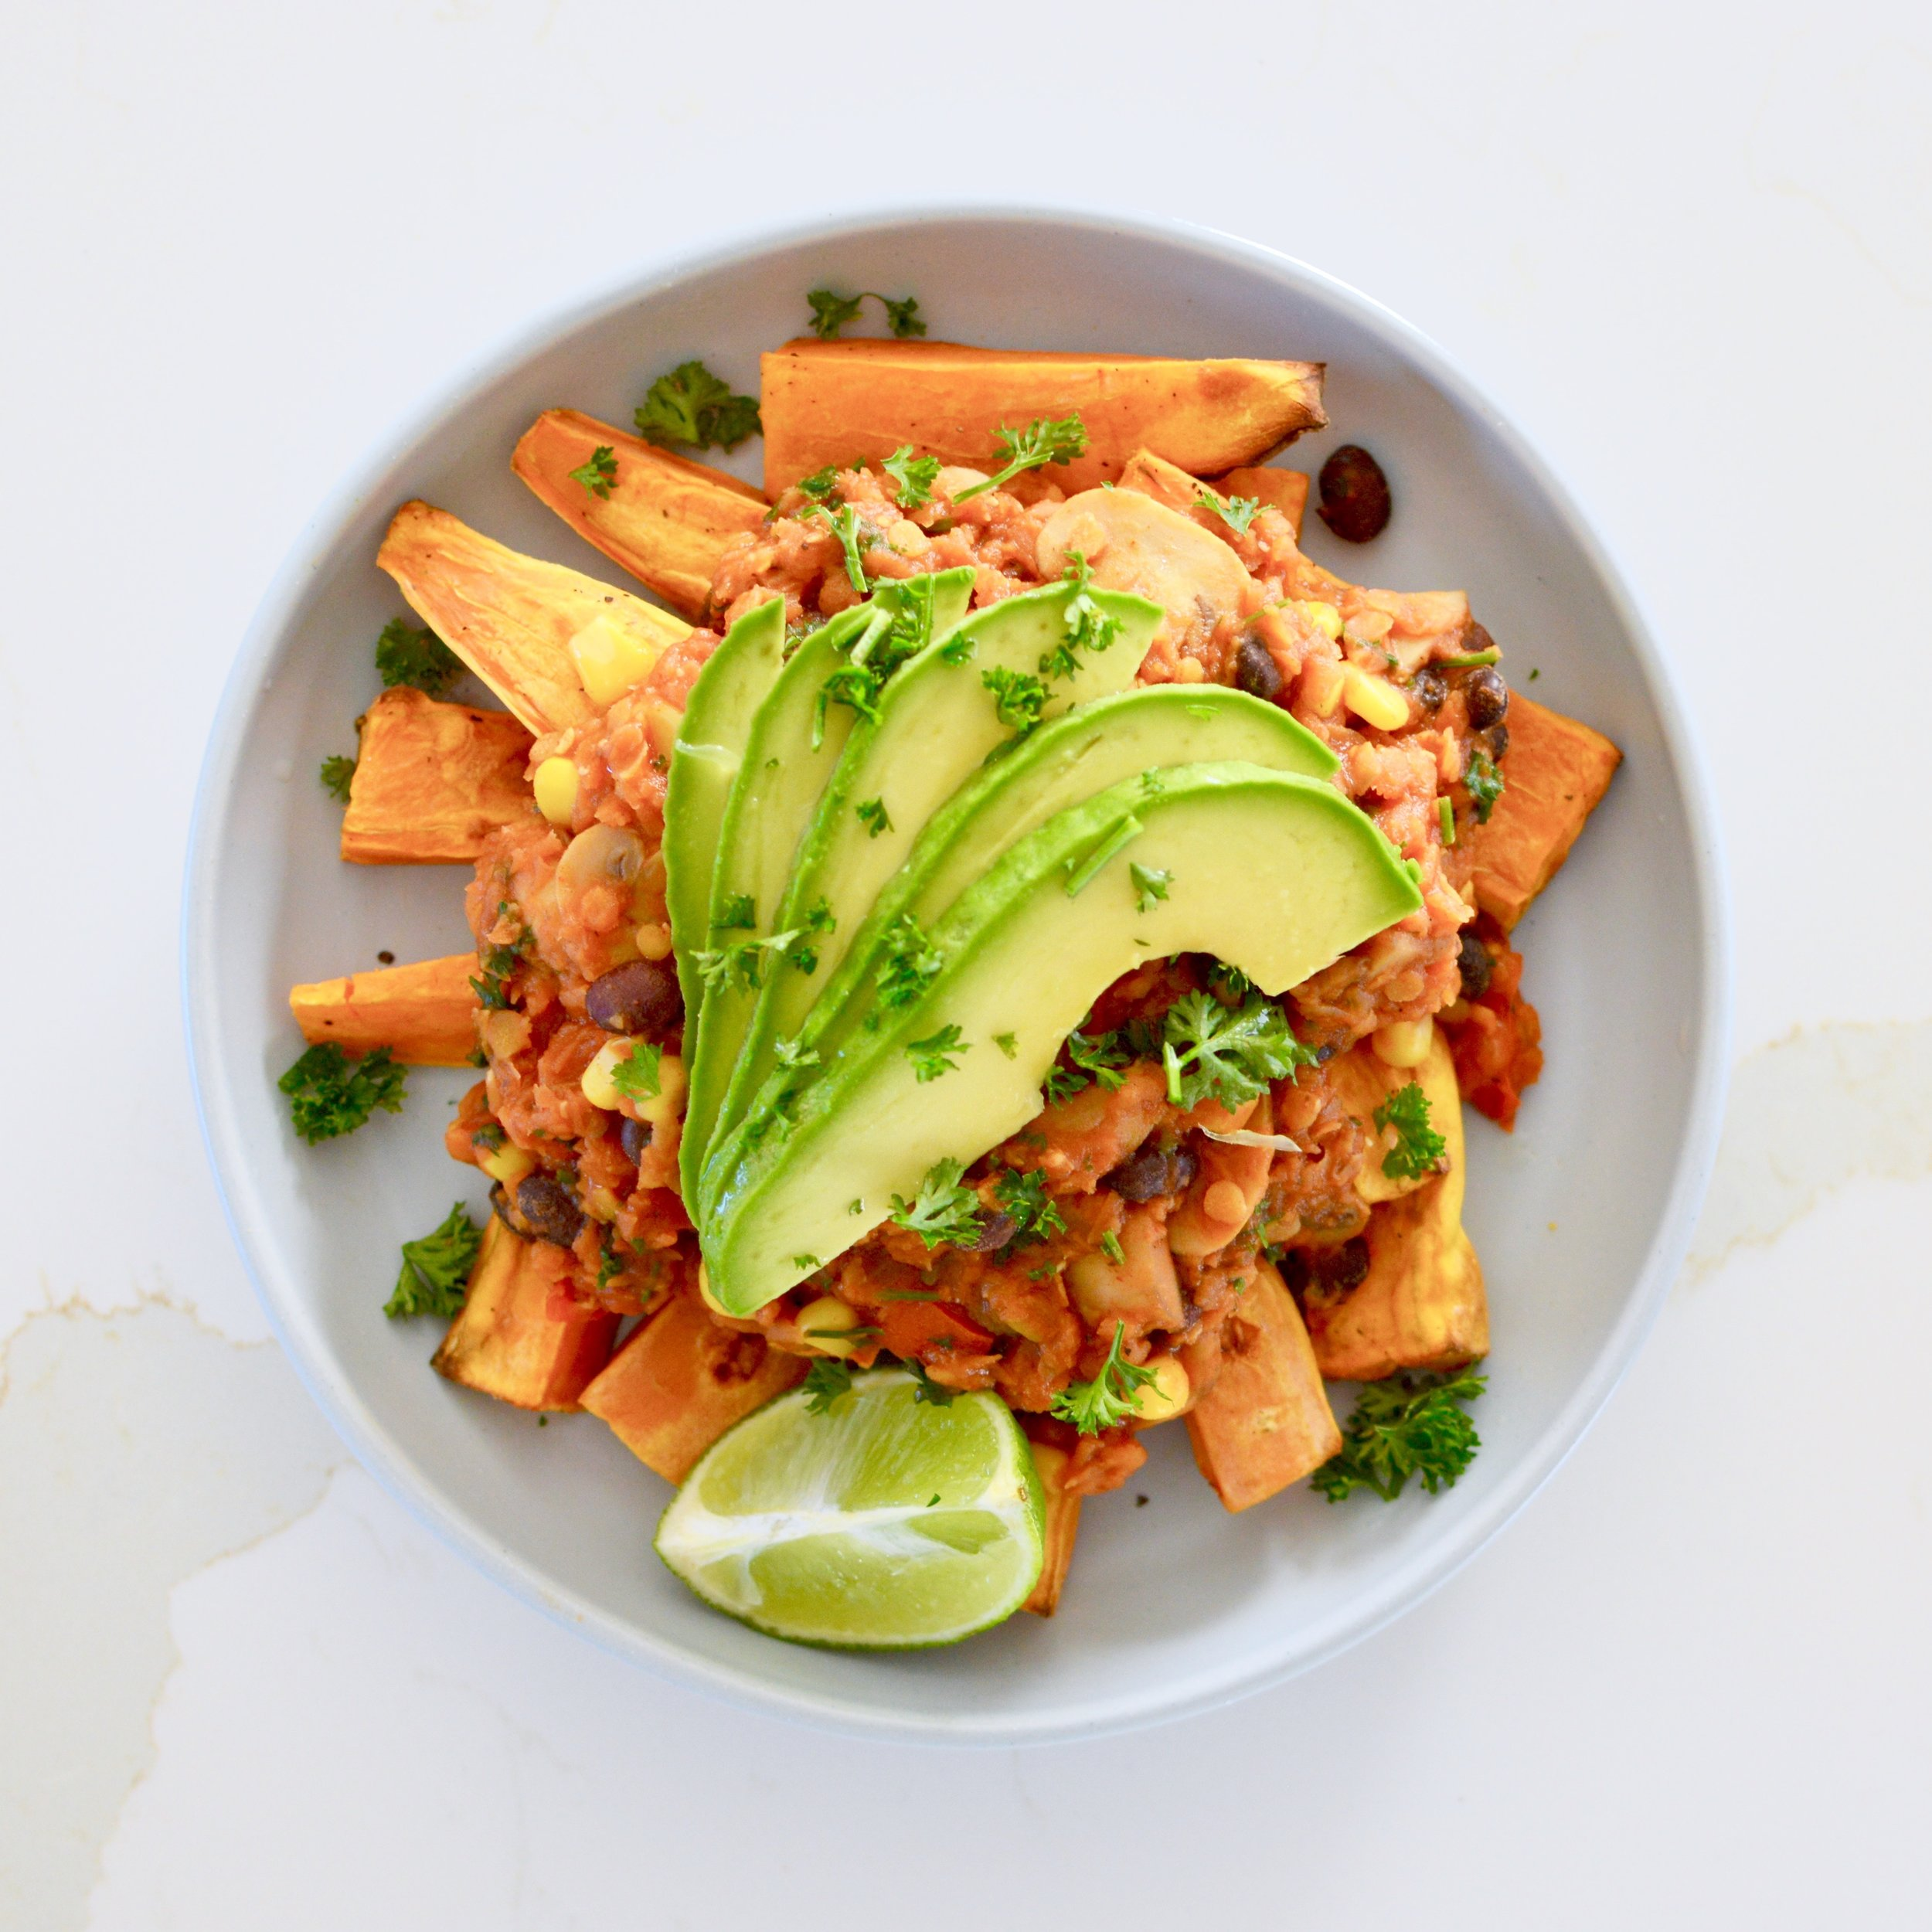 Tex Mex Lentils with Sweet Potato Wedges